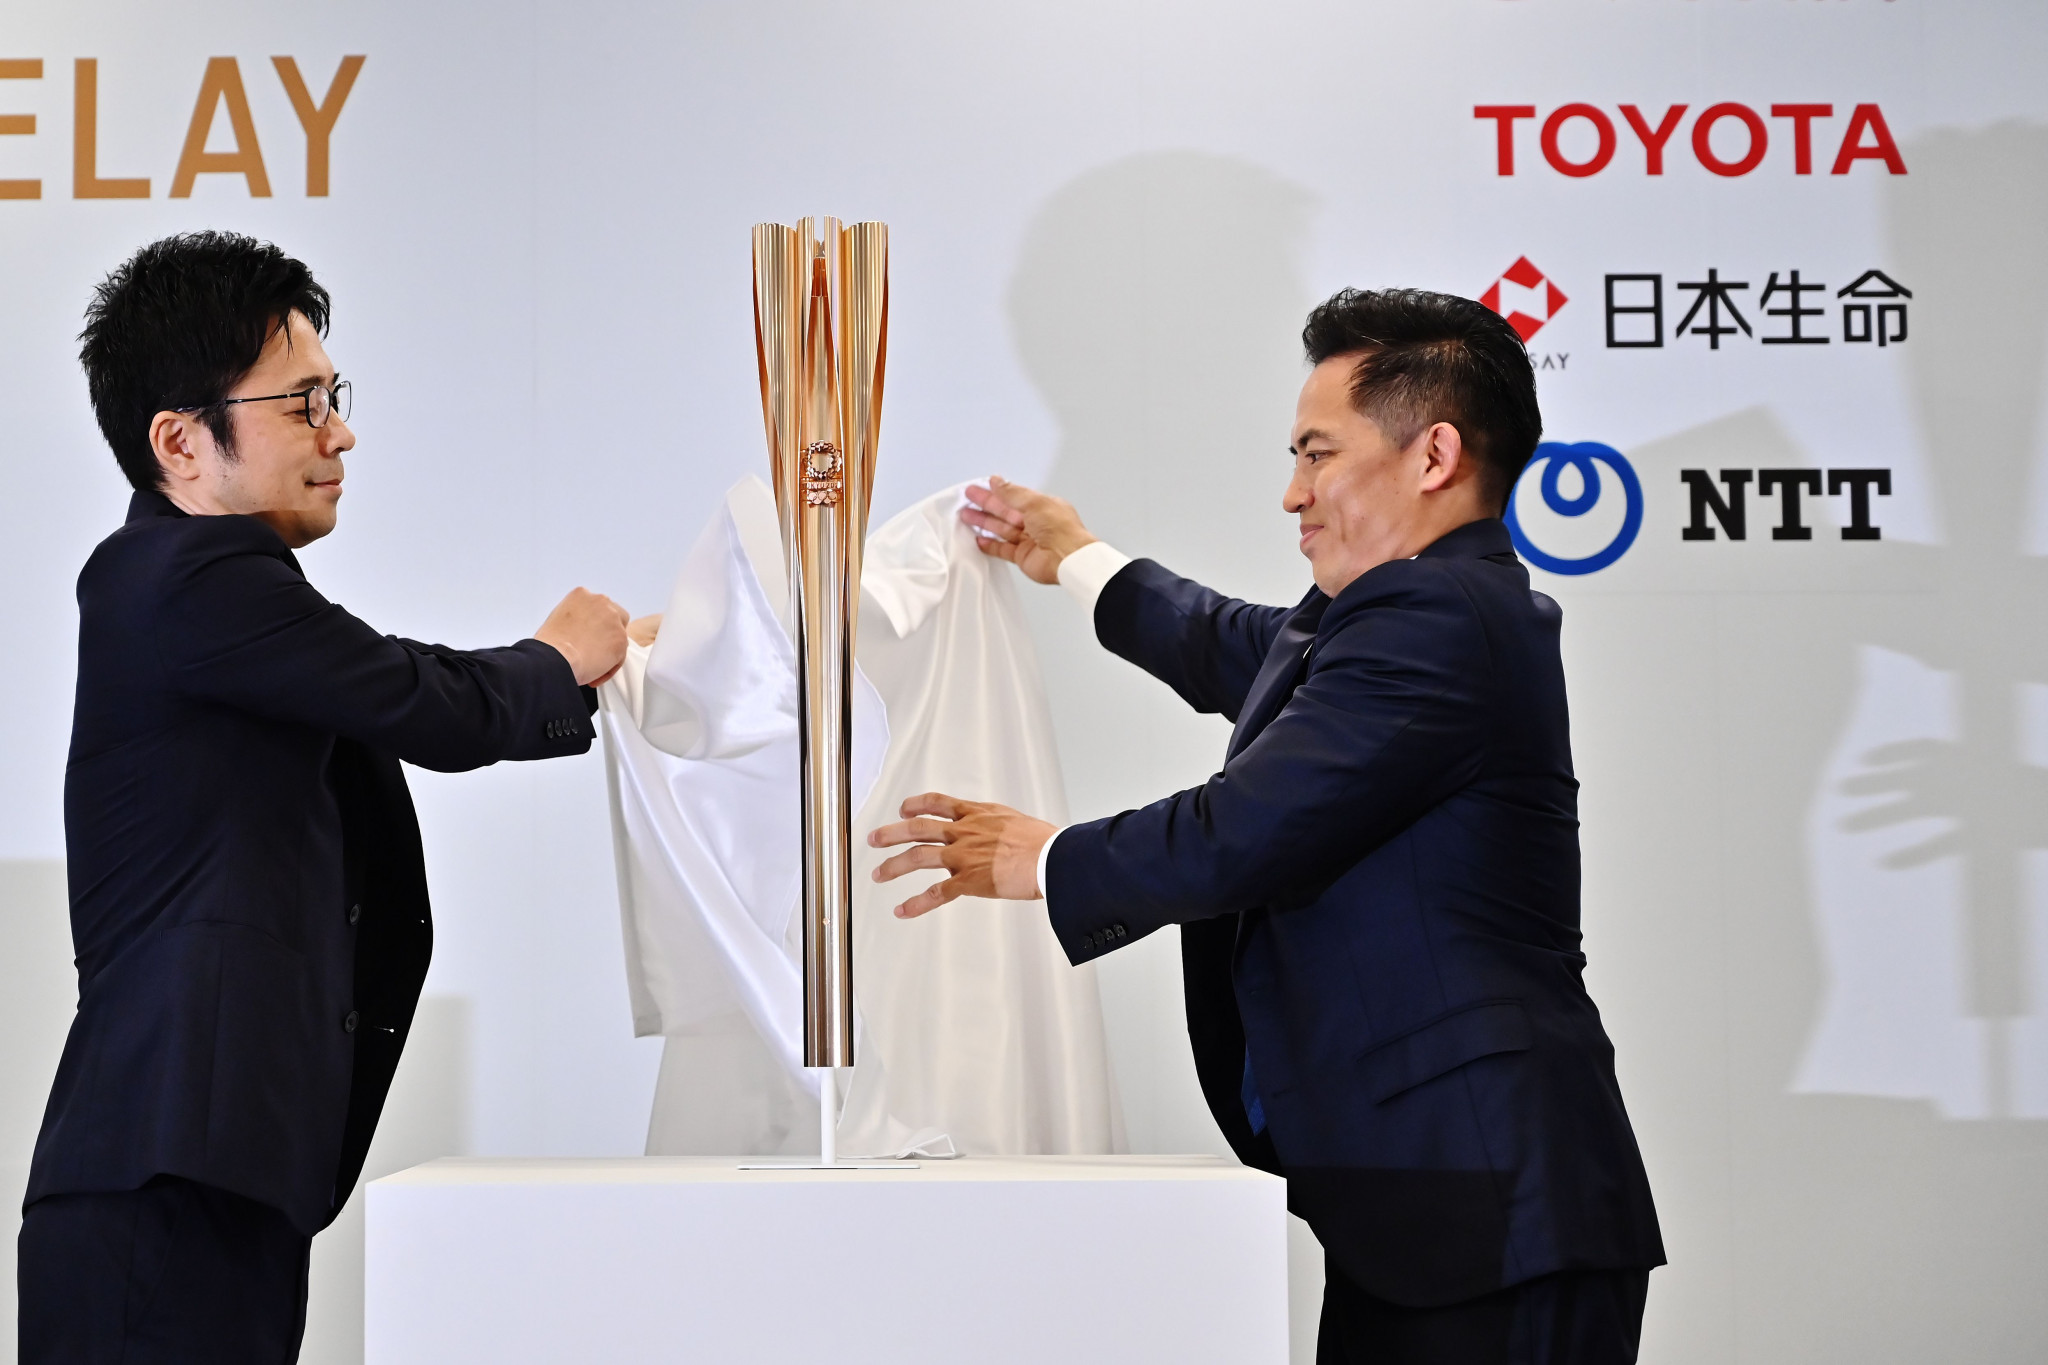 Designer Tokujin Yoshioka, left, and Torch Relay ambassador Tadahiro Nomura, right, unveil the Tokyo 2020 Olympic Torch ©Getty Images